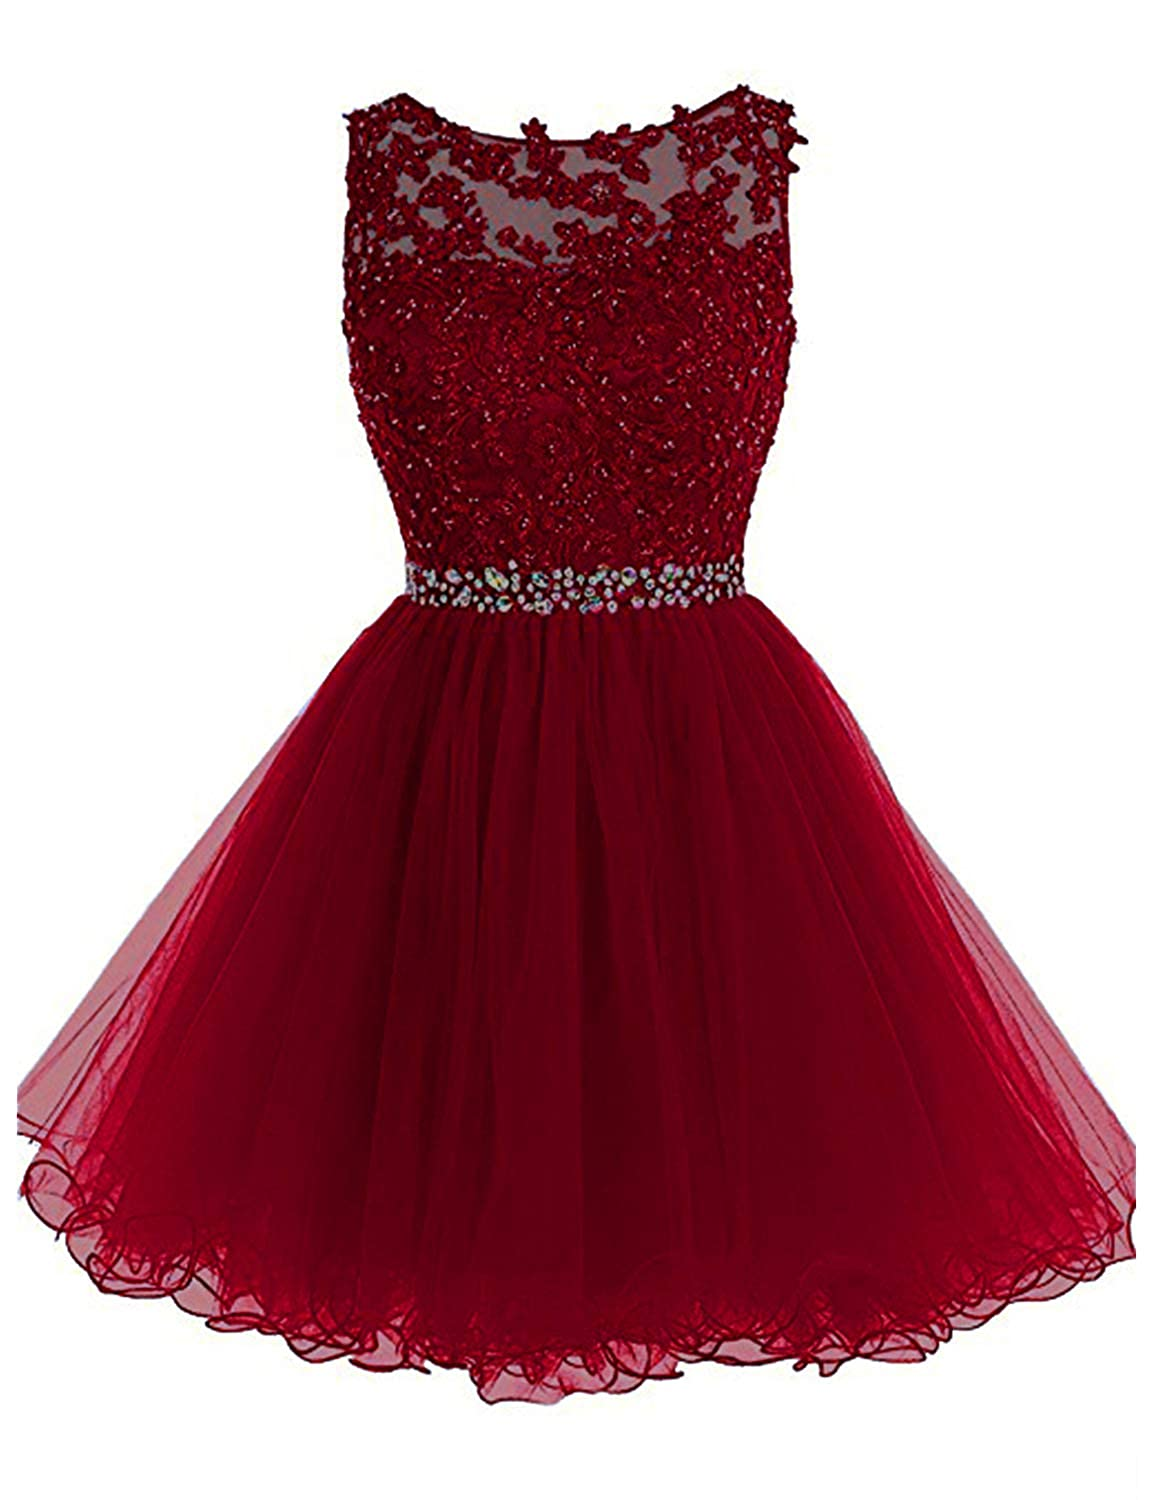 0 Burgundy Vimans Women's Short Tulle Homecoming Dresses 2018 Knee Length Lace Prom Gowns Dress448